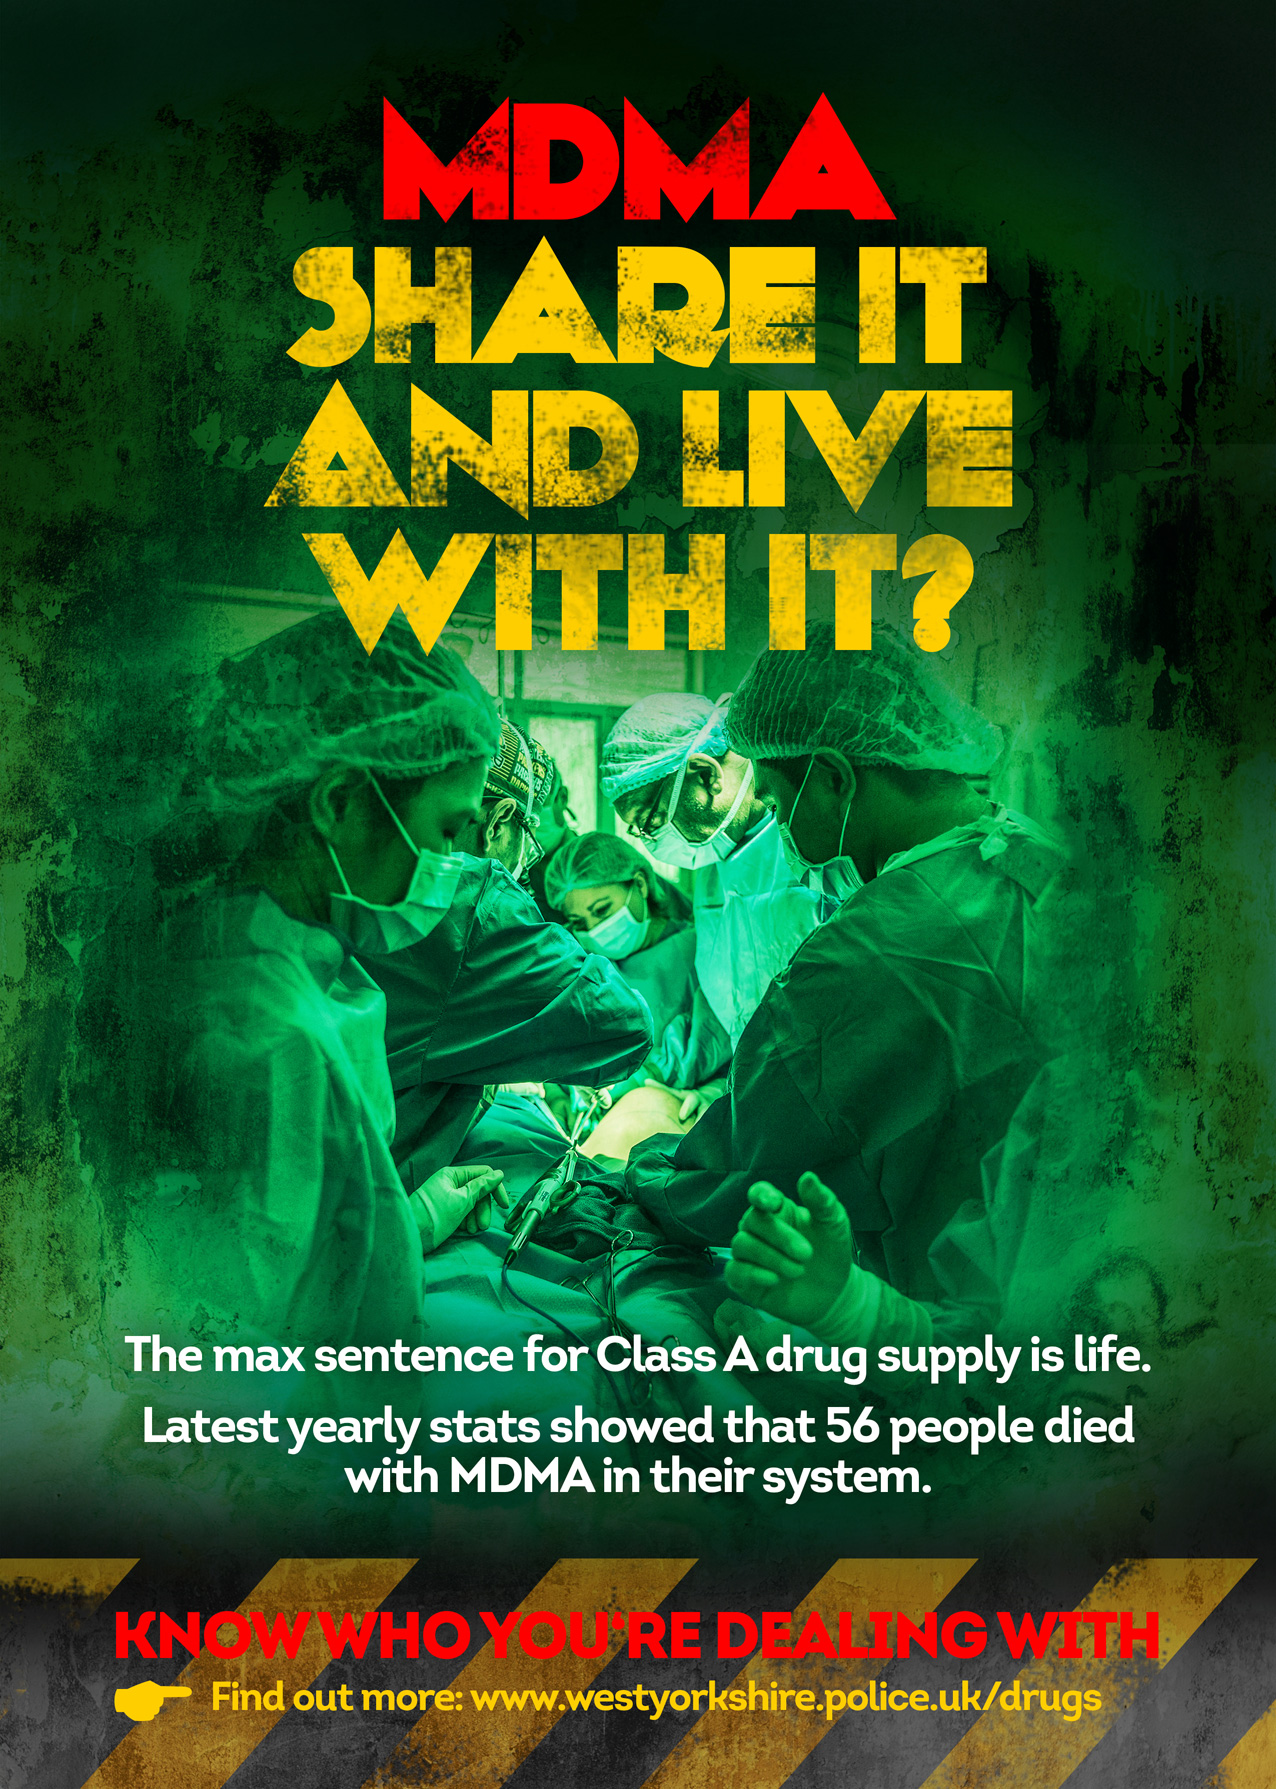 MDMA Share It And Live With It? Poster